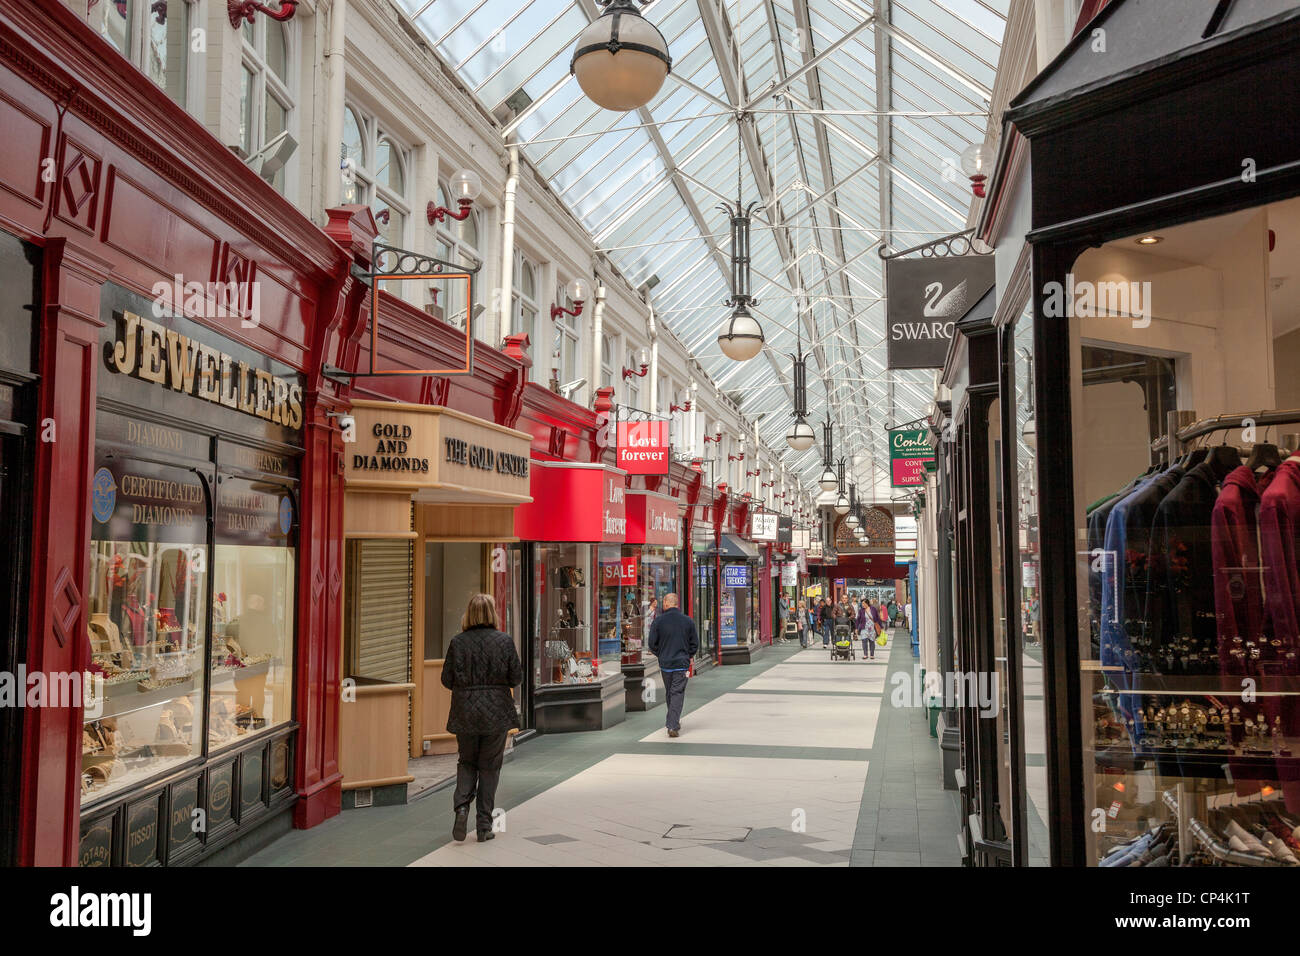 The Makinson Arcade in the centre of Wigan. - Stock Image